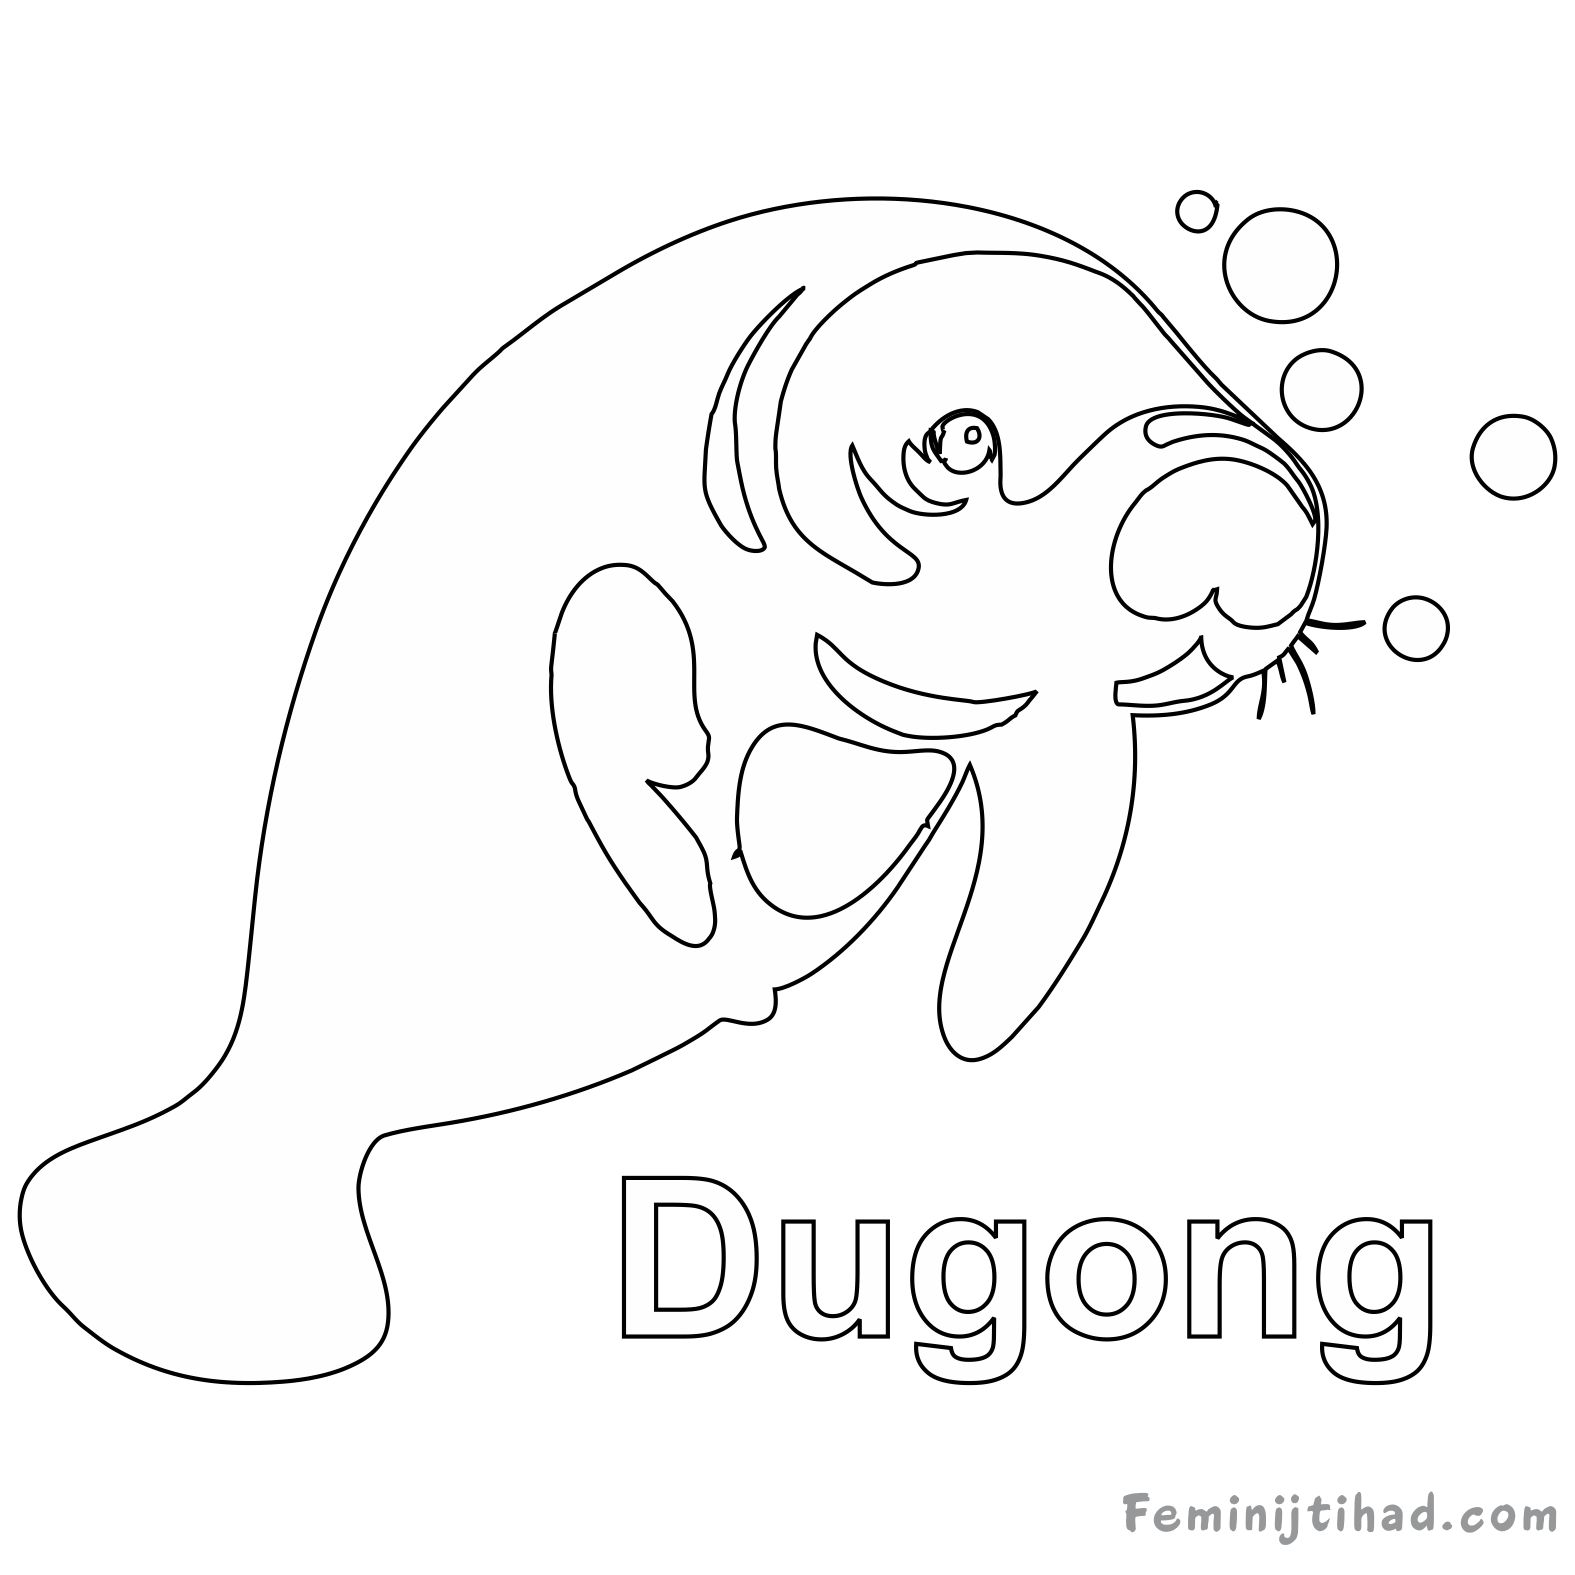 1575x1575 Dugong Coloring Pages Free To Print Coloring Pages For Kids